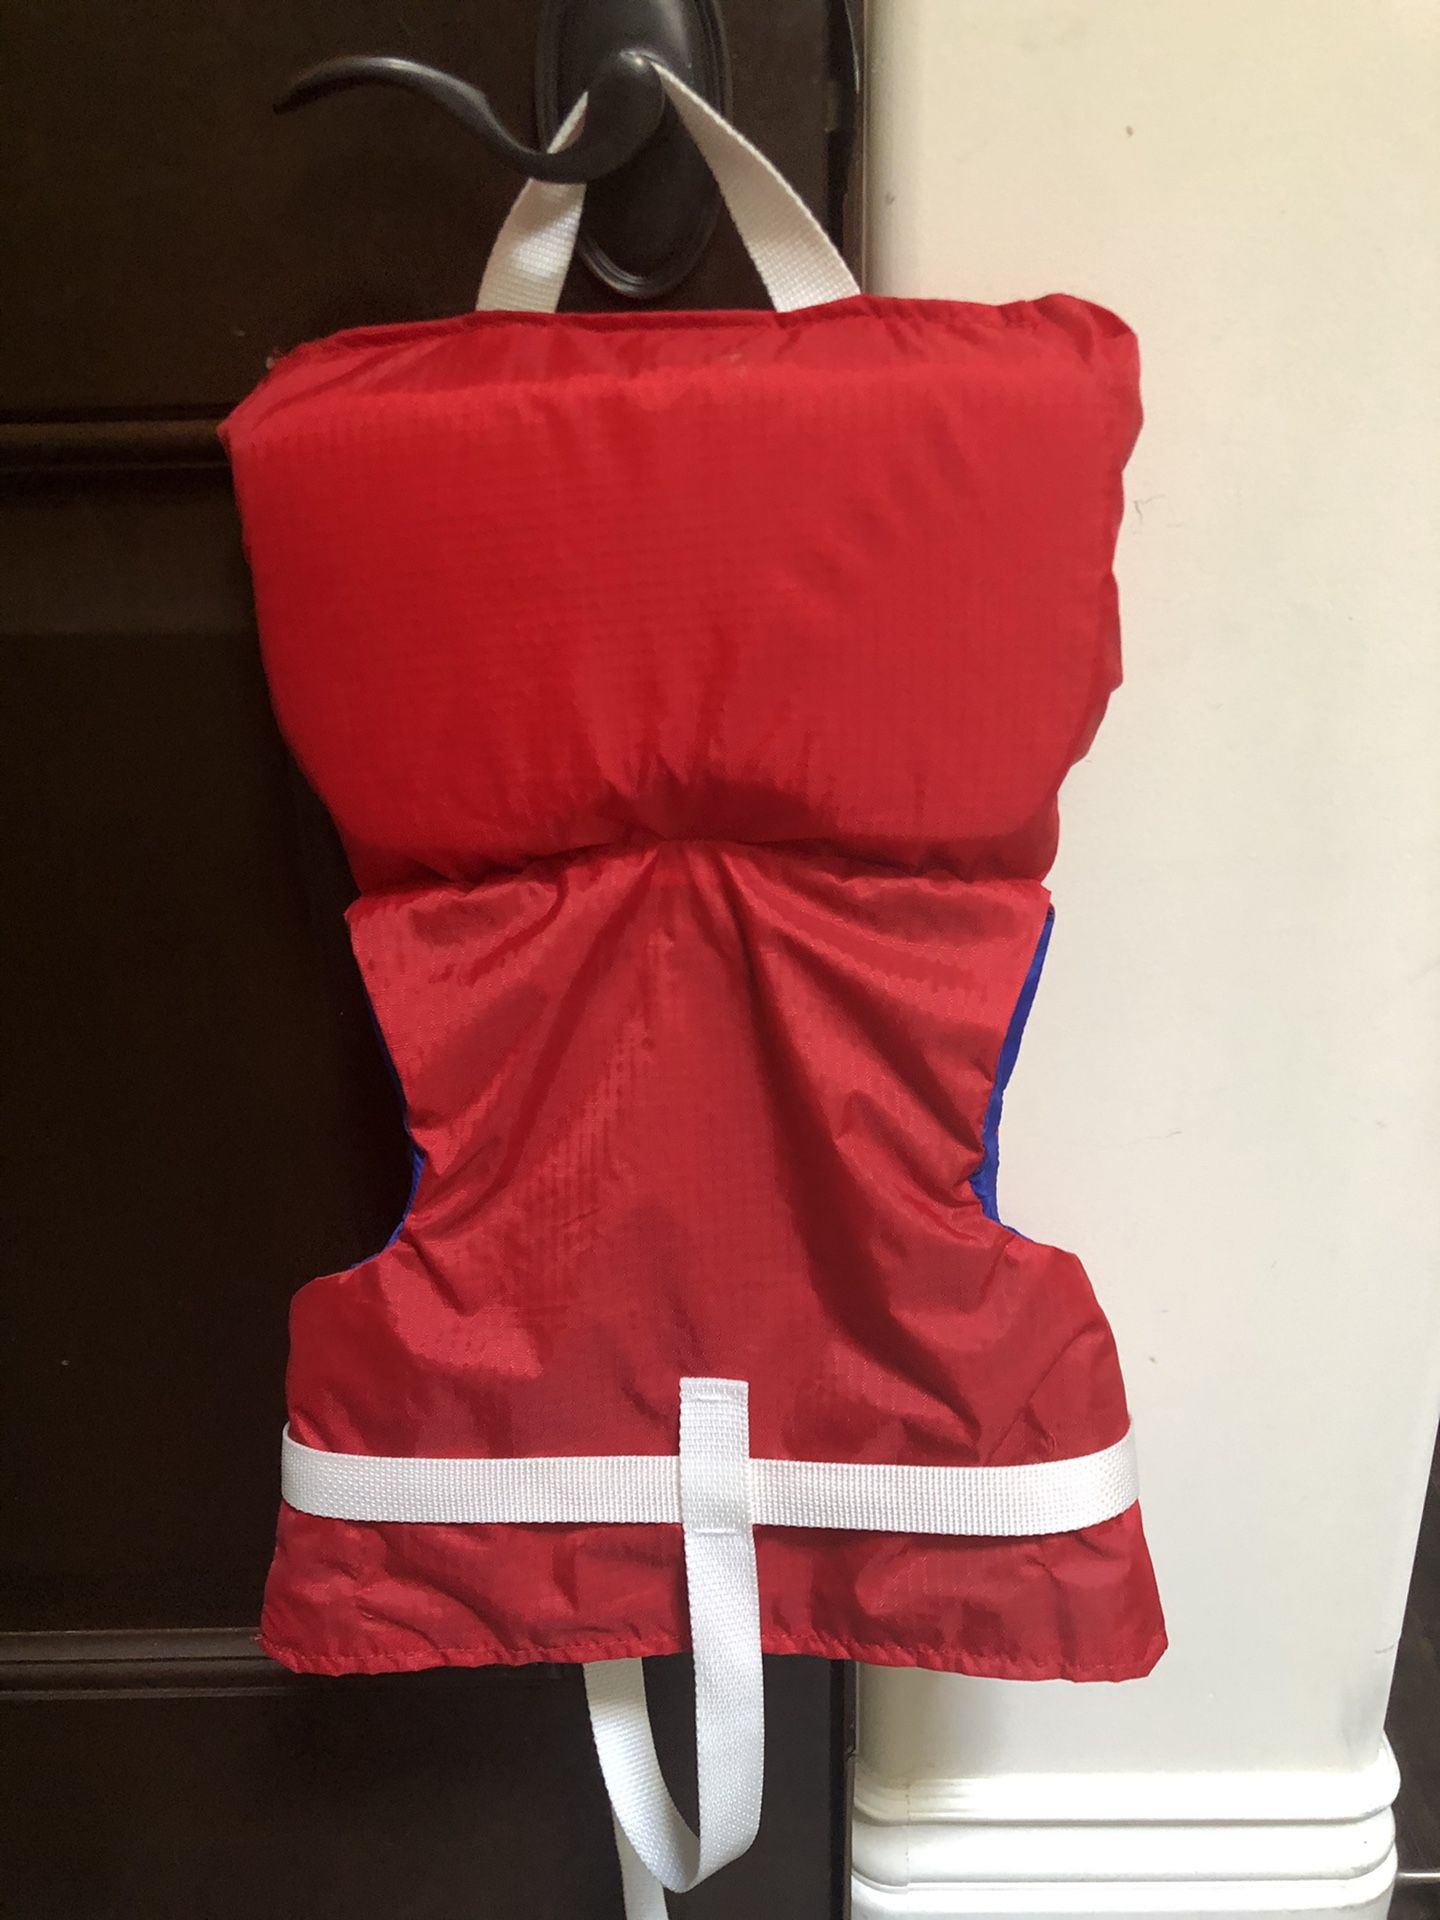 Infant/ child safety guard vest for swimming